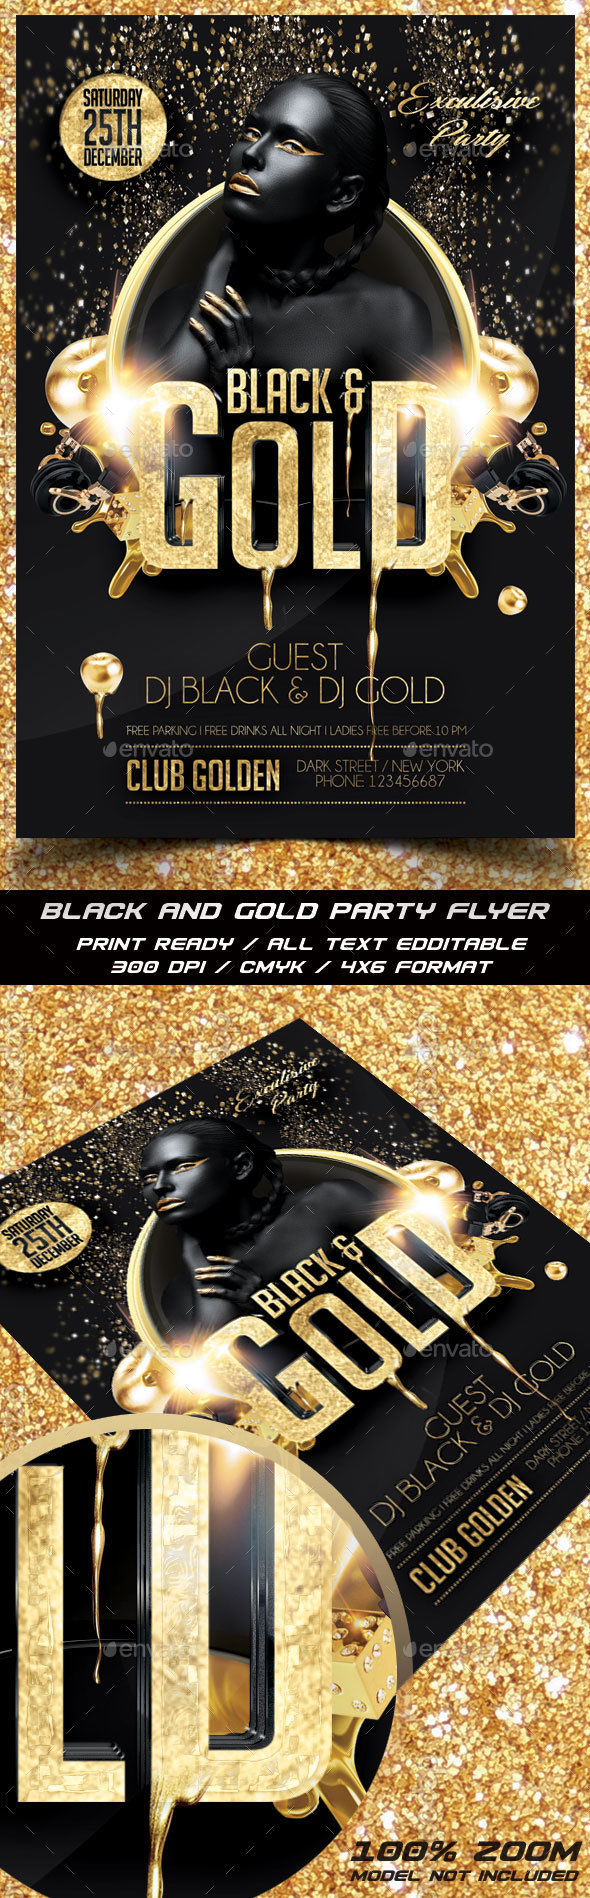 Black and Gold Party Flyer - Events Flyers